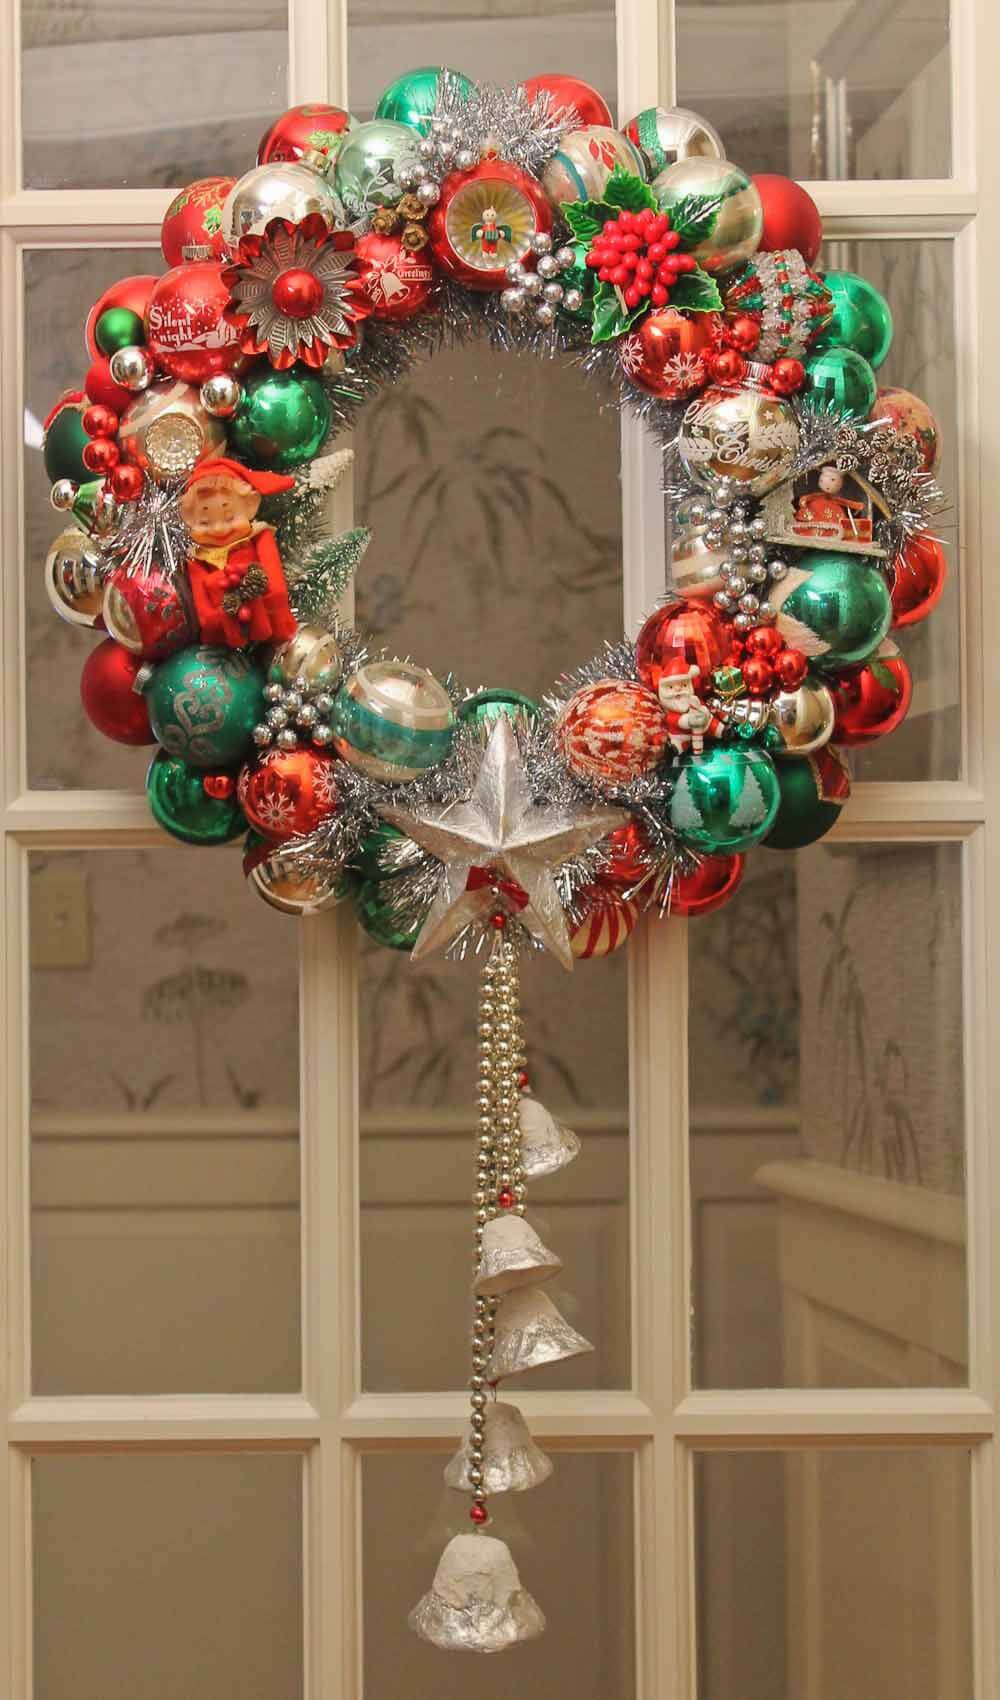 100 photos of diy christmas ornament wreaths upload Making wreaths